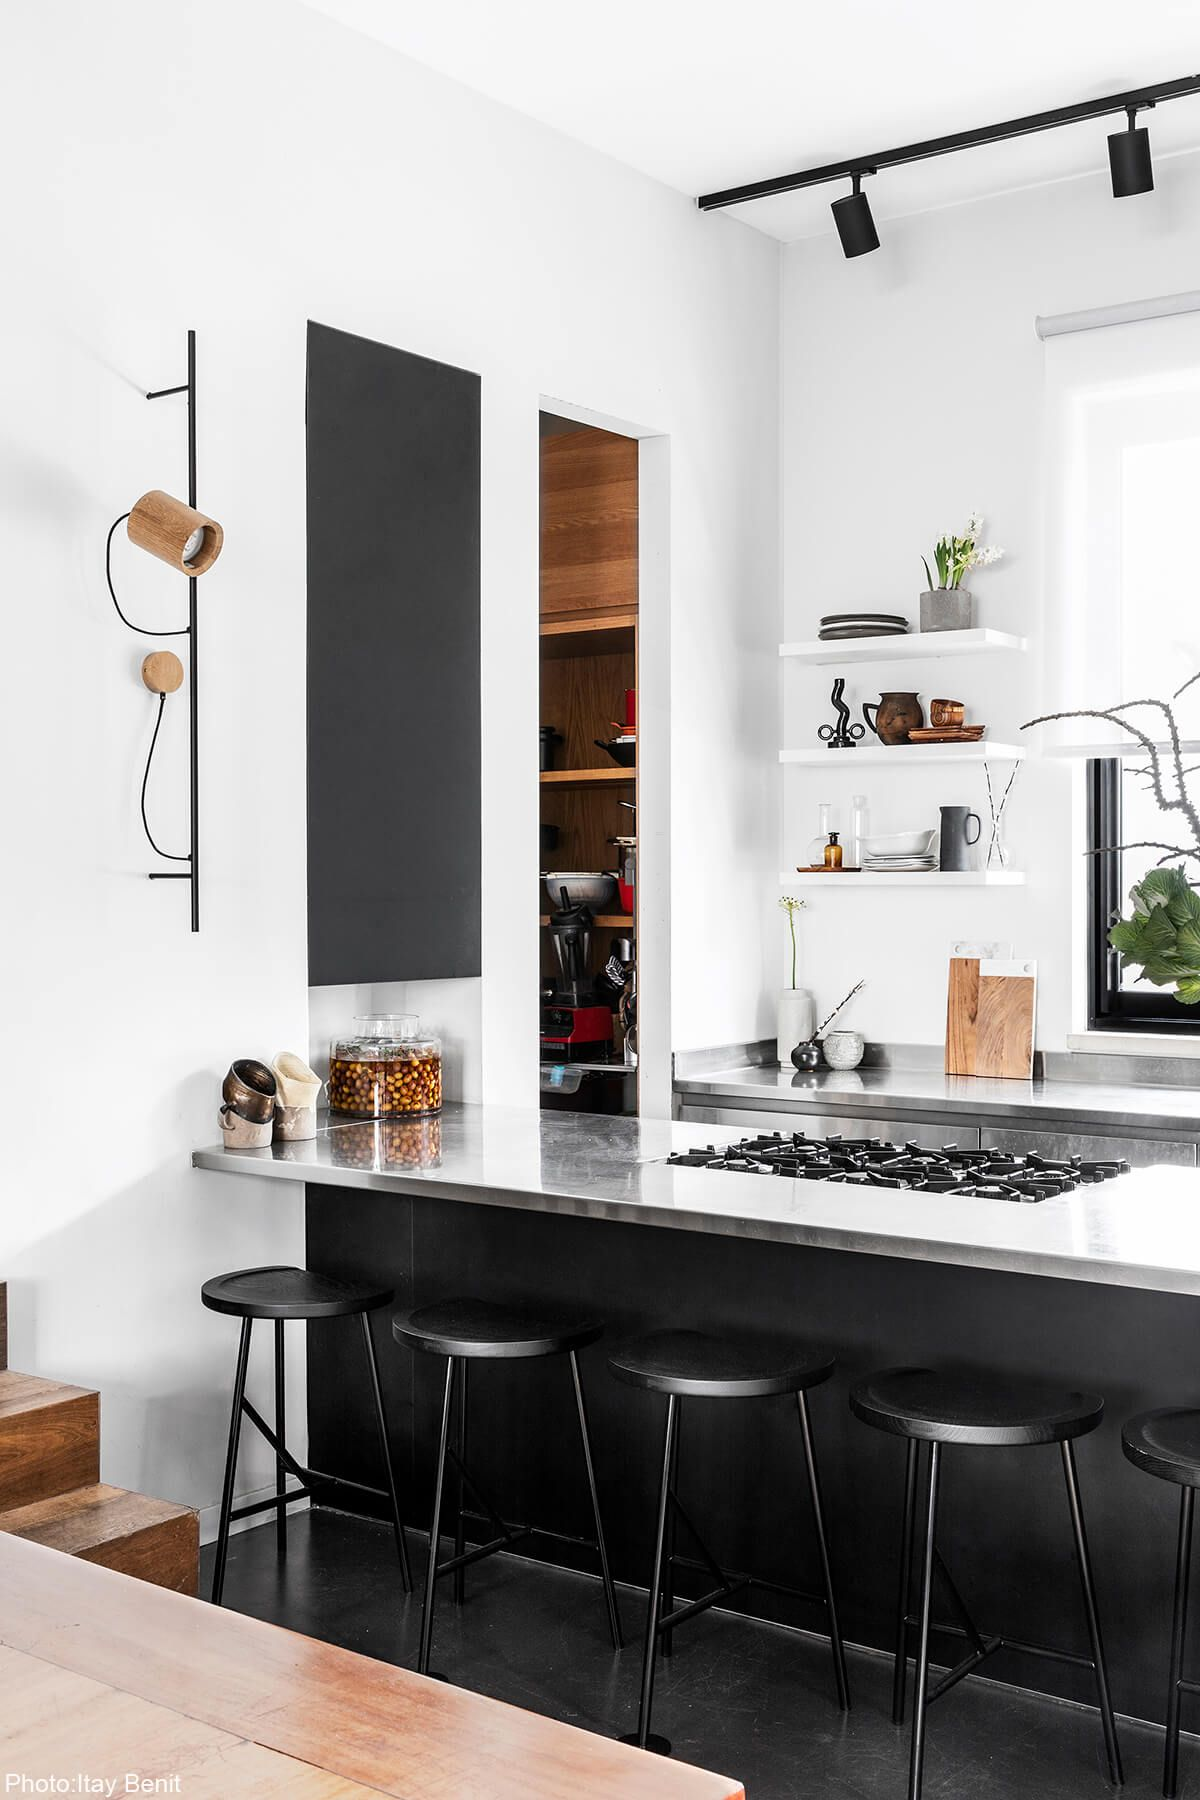 240sqm house tel aviv with images black kitchen table black kitchens modern black kitchen on kitchen interior table id=16677